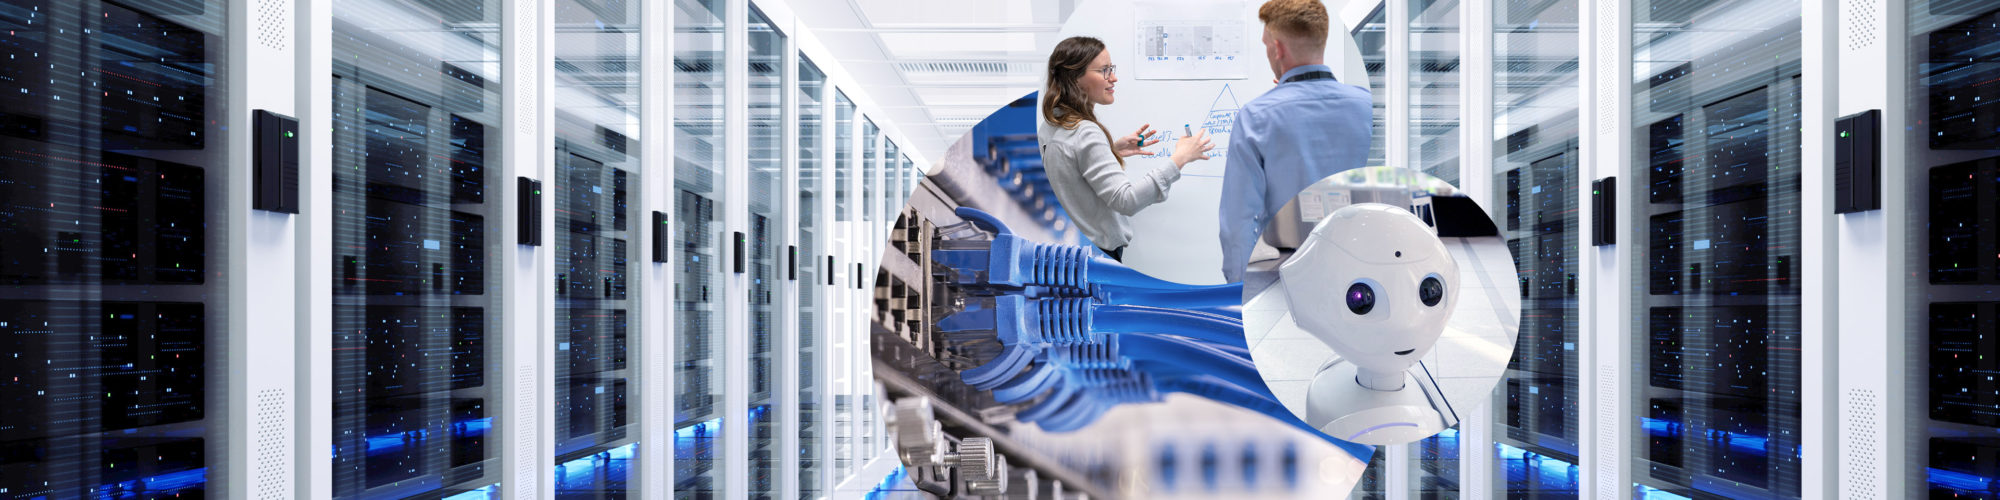 Header image of our Data Science service page consisting of a server room, a robot and two people discussing in front of a flipchart.